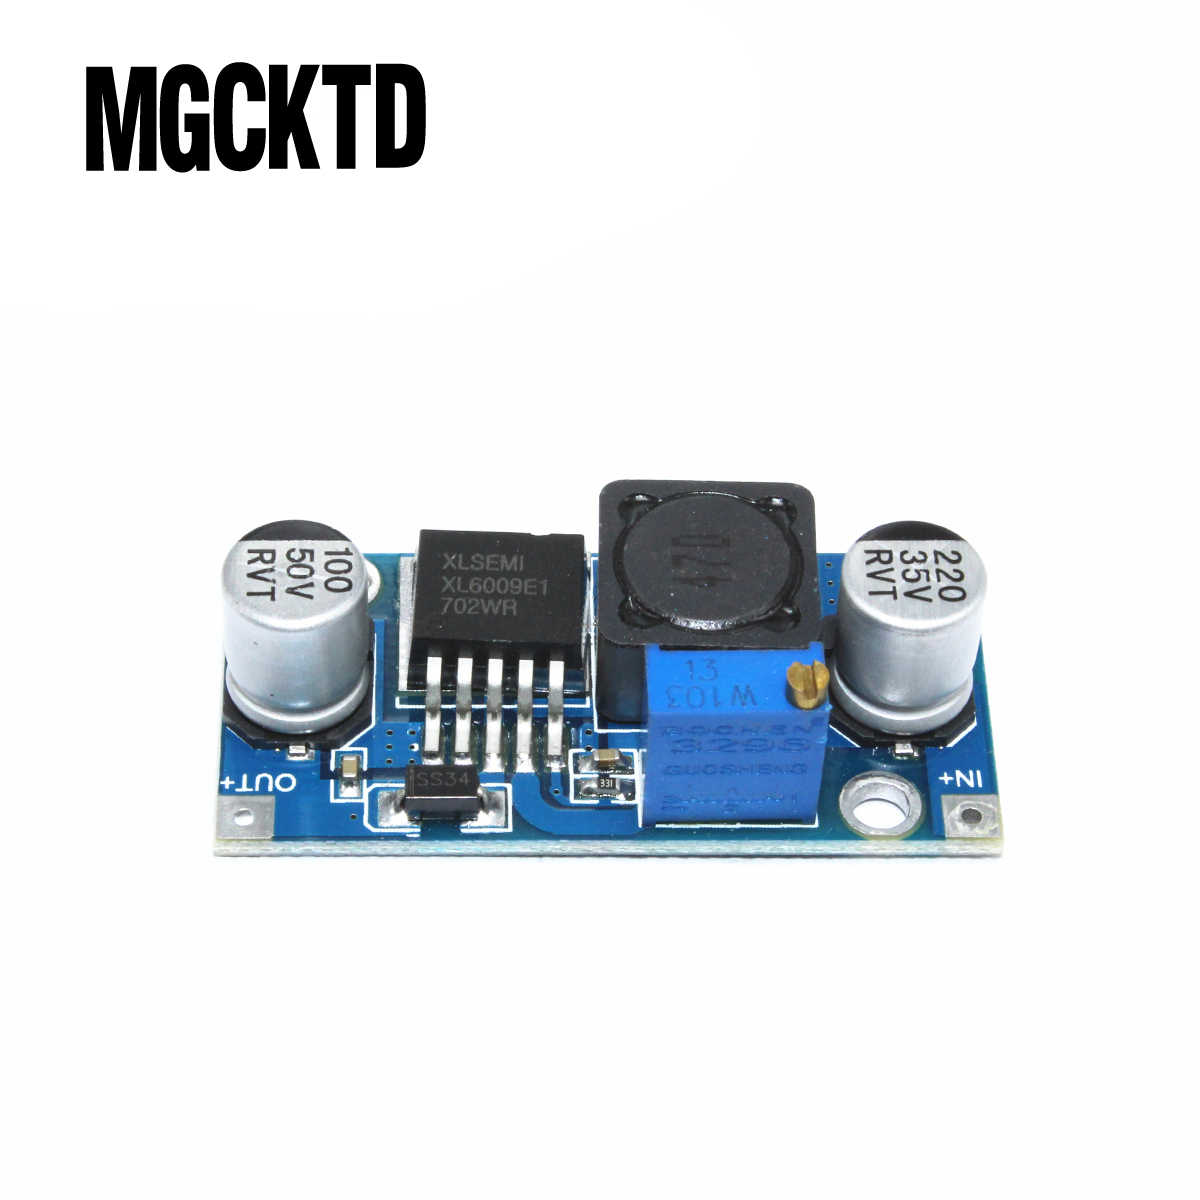 Asli XL6009 DC-DC Booster Modul Power Supply Modul Output Disesuaikan Super LM2577 Step-Up Modul